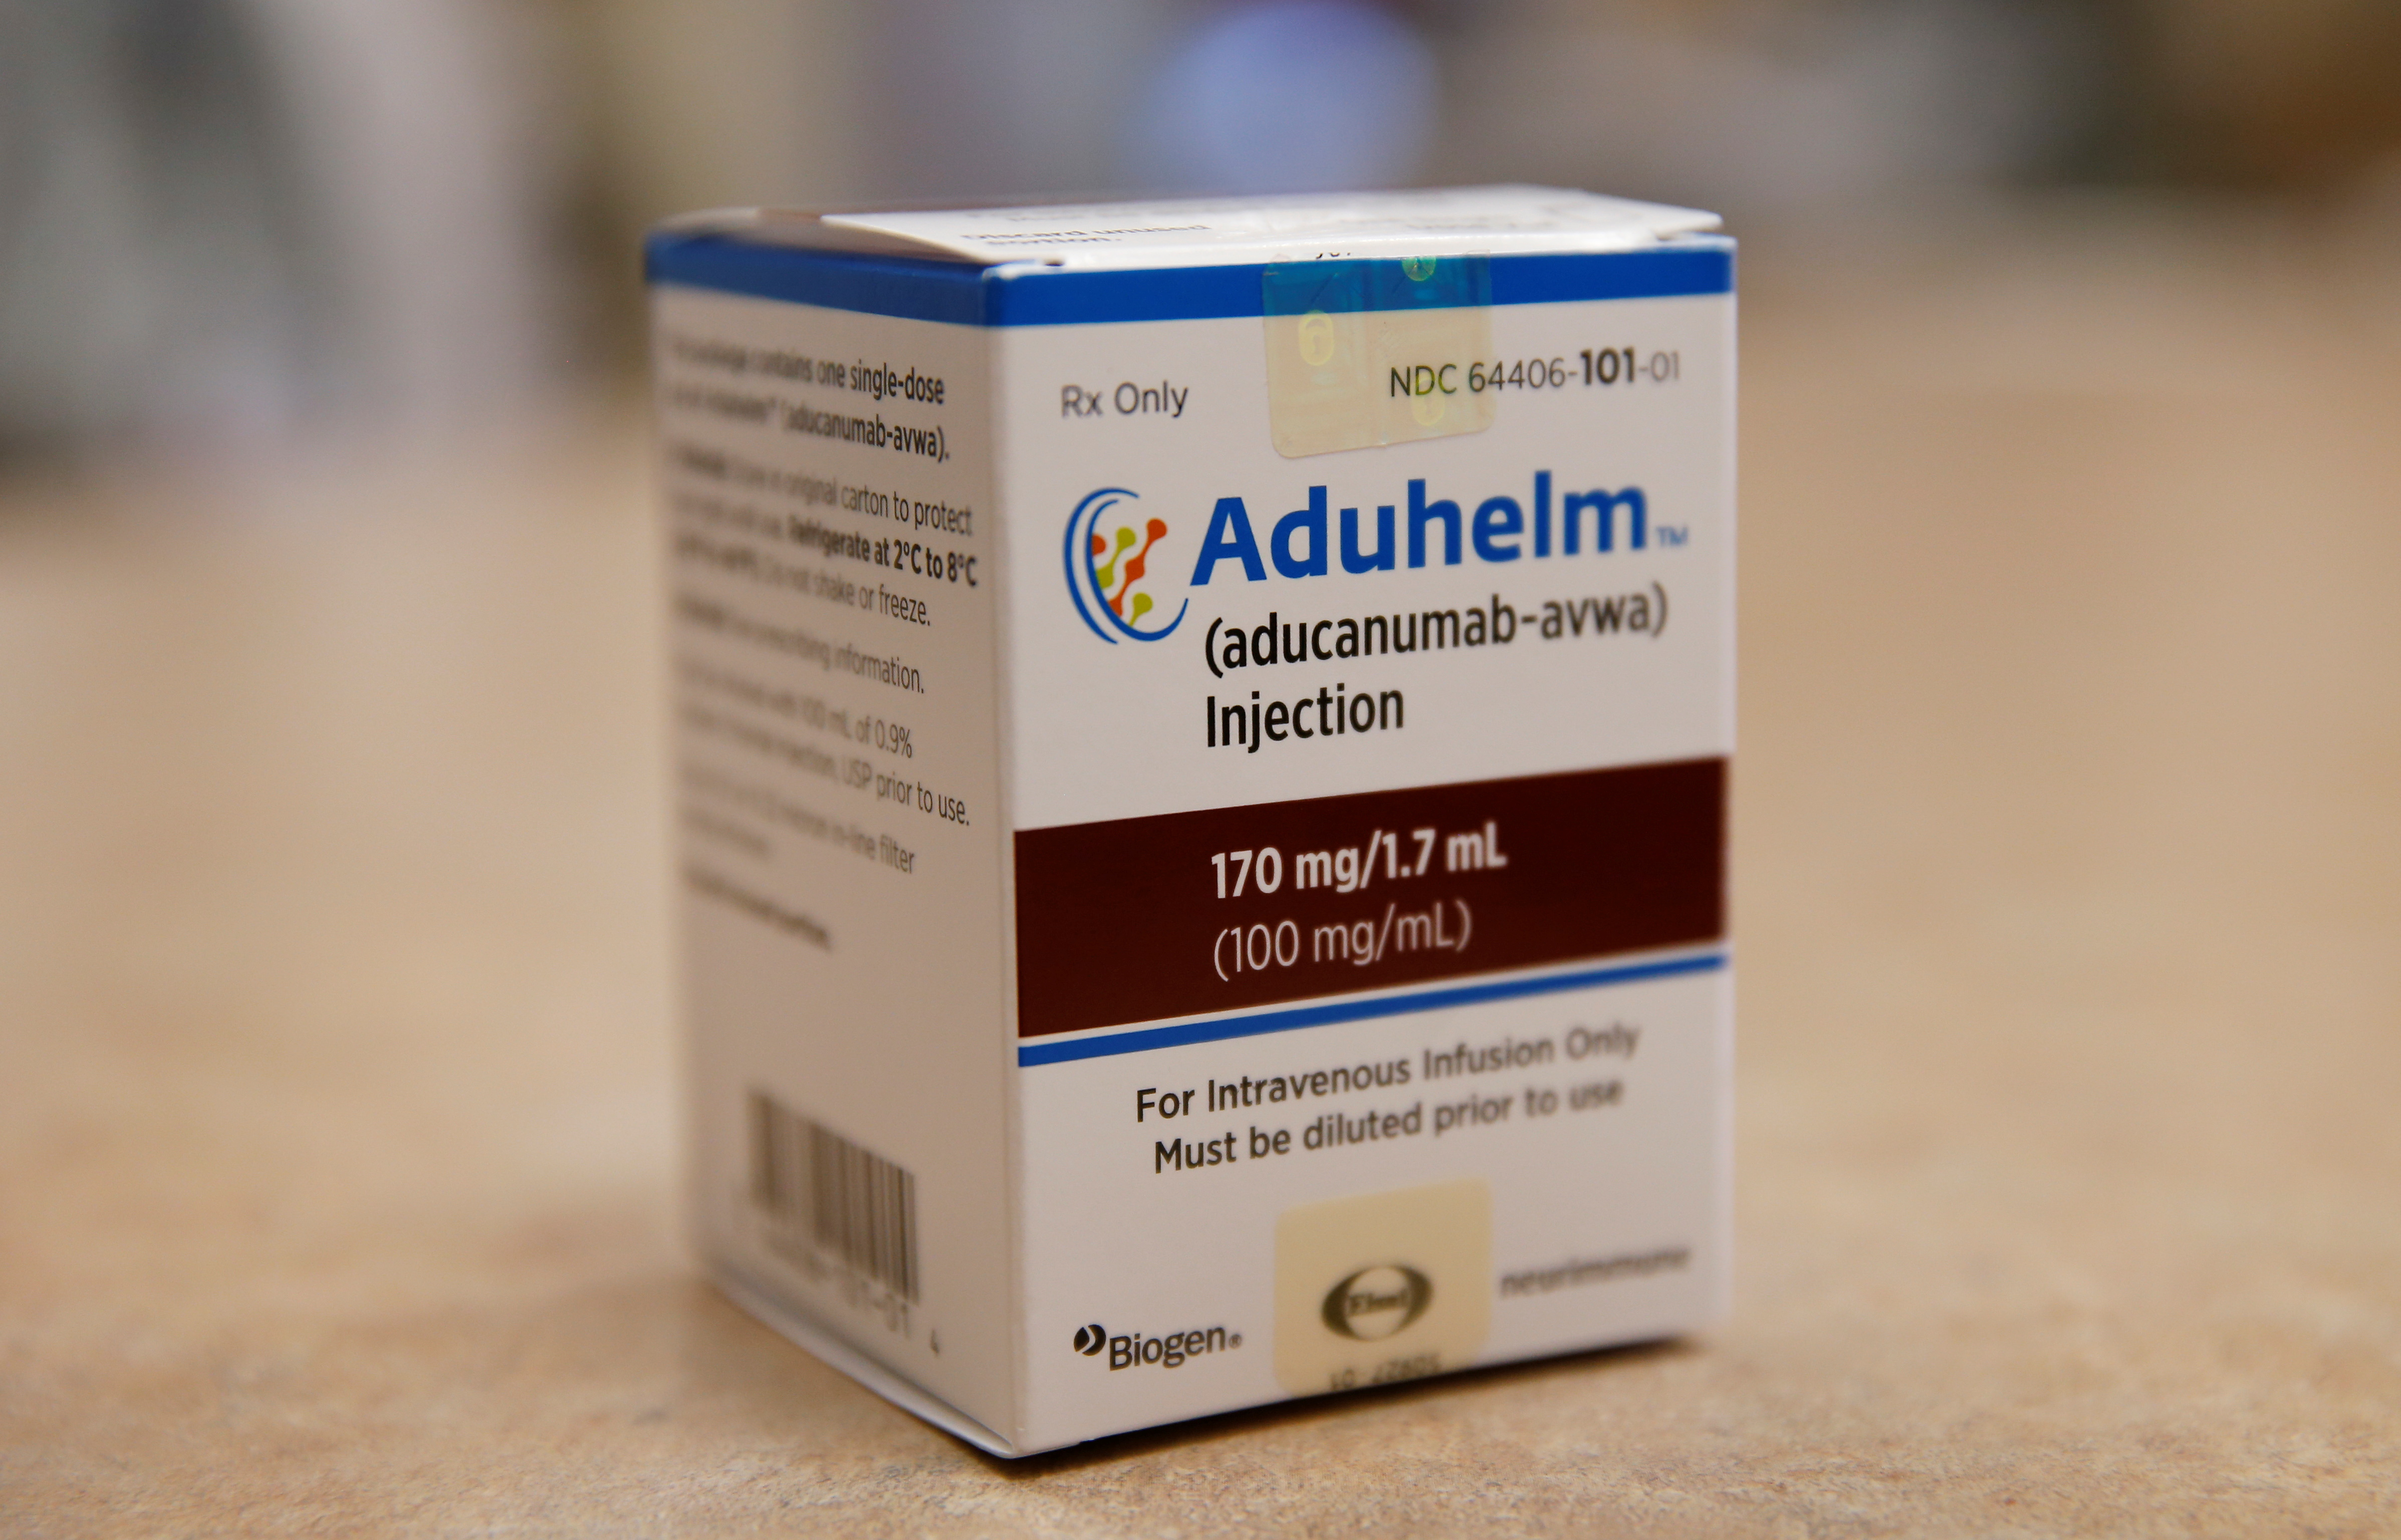 Aduhelm, Biogen's controversial recently approved drug for early Alzheimer's disease, is seen at Butler Hospital, one of the clinical research sites in Providence, Rhode Island, U.S. June 16, 2021. Jessica Rinaldi/Pool via REUTERS